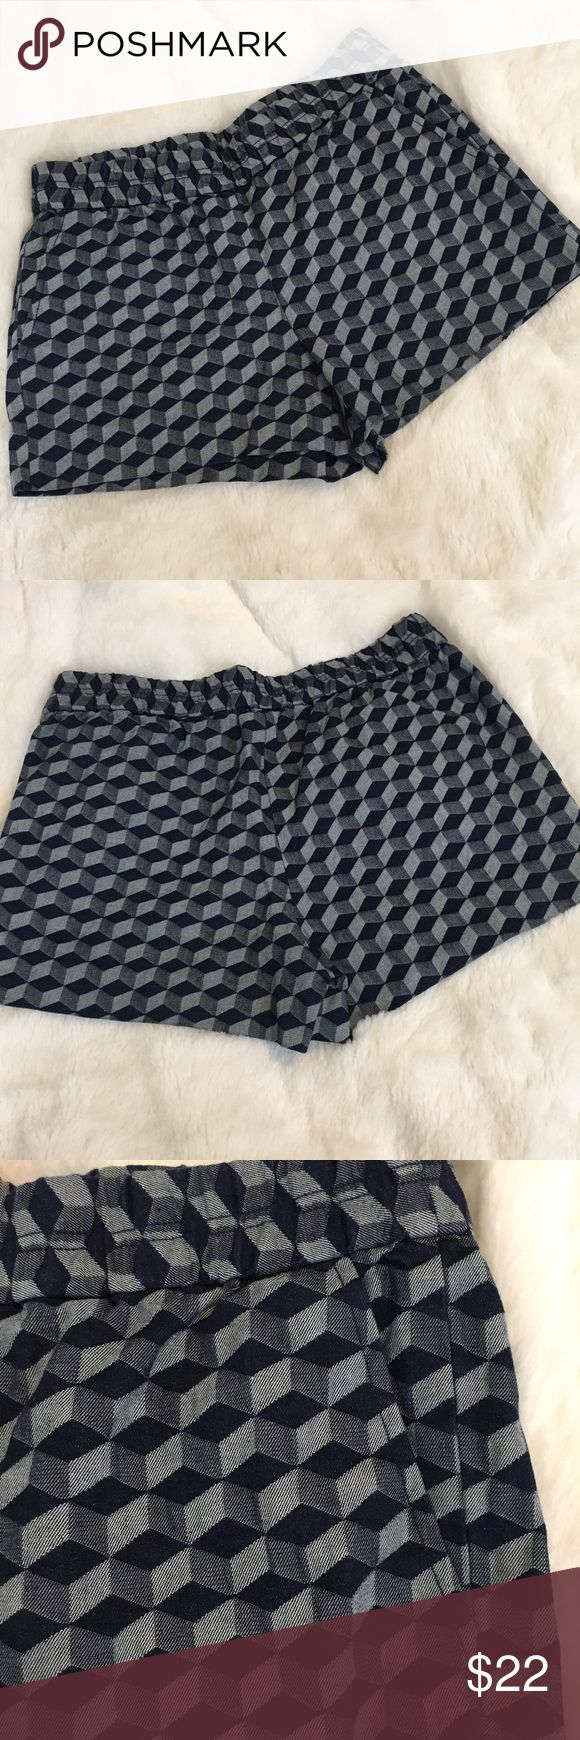 """🆕J Crew Diamond Pattern Shorts J Crew blue diamond pattern shorts with elastic waistband and pockets!! Brand new with tags! 98% cotton, 2% elastane. Size 4. Measures: waist 14.5"""", rise 10"""", inseam 3"""". ❌NO TRADES❌NO LOWBALLING❌NO MODELING❌ J. Crew Shorts"""